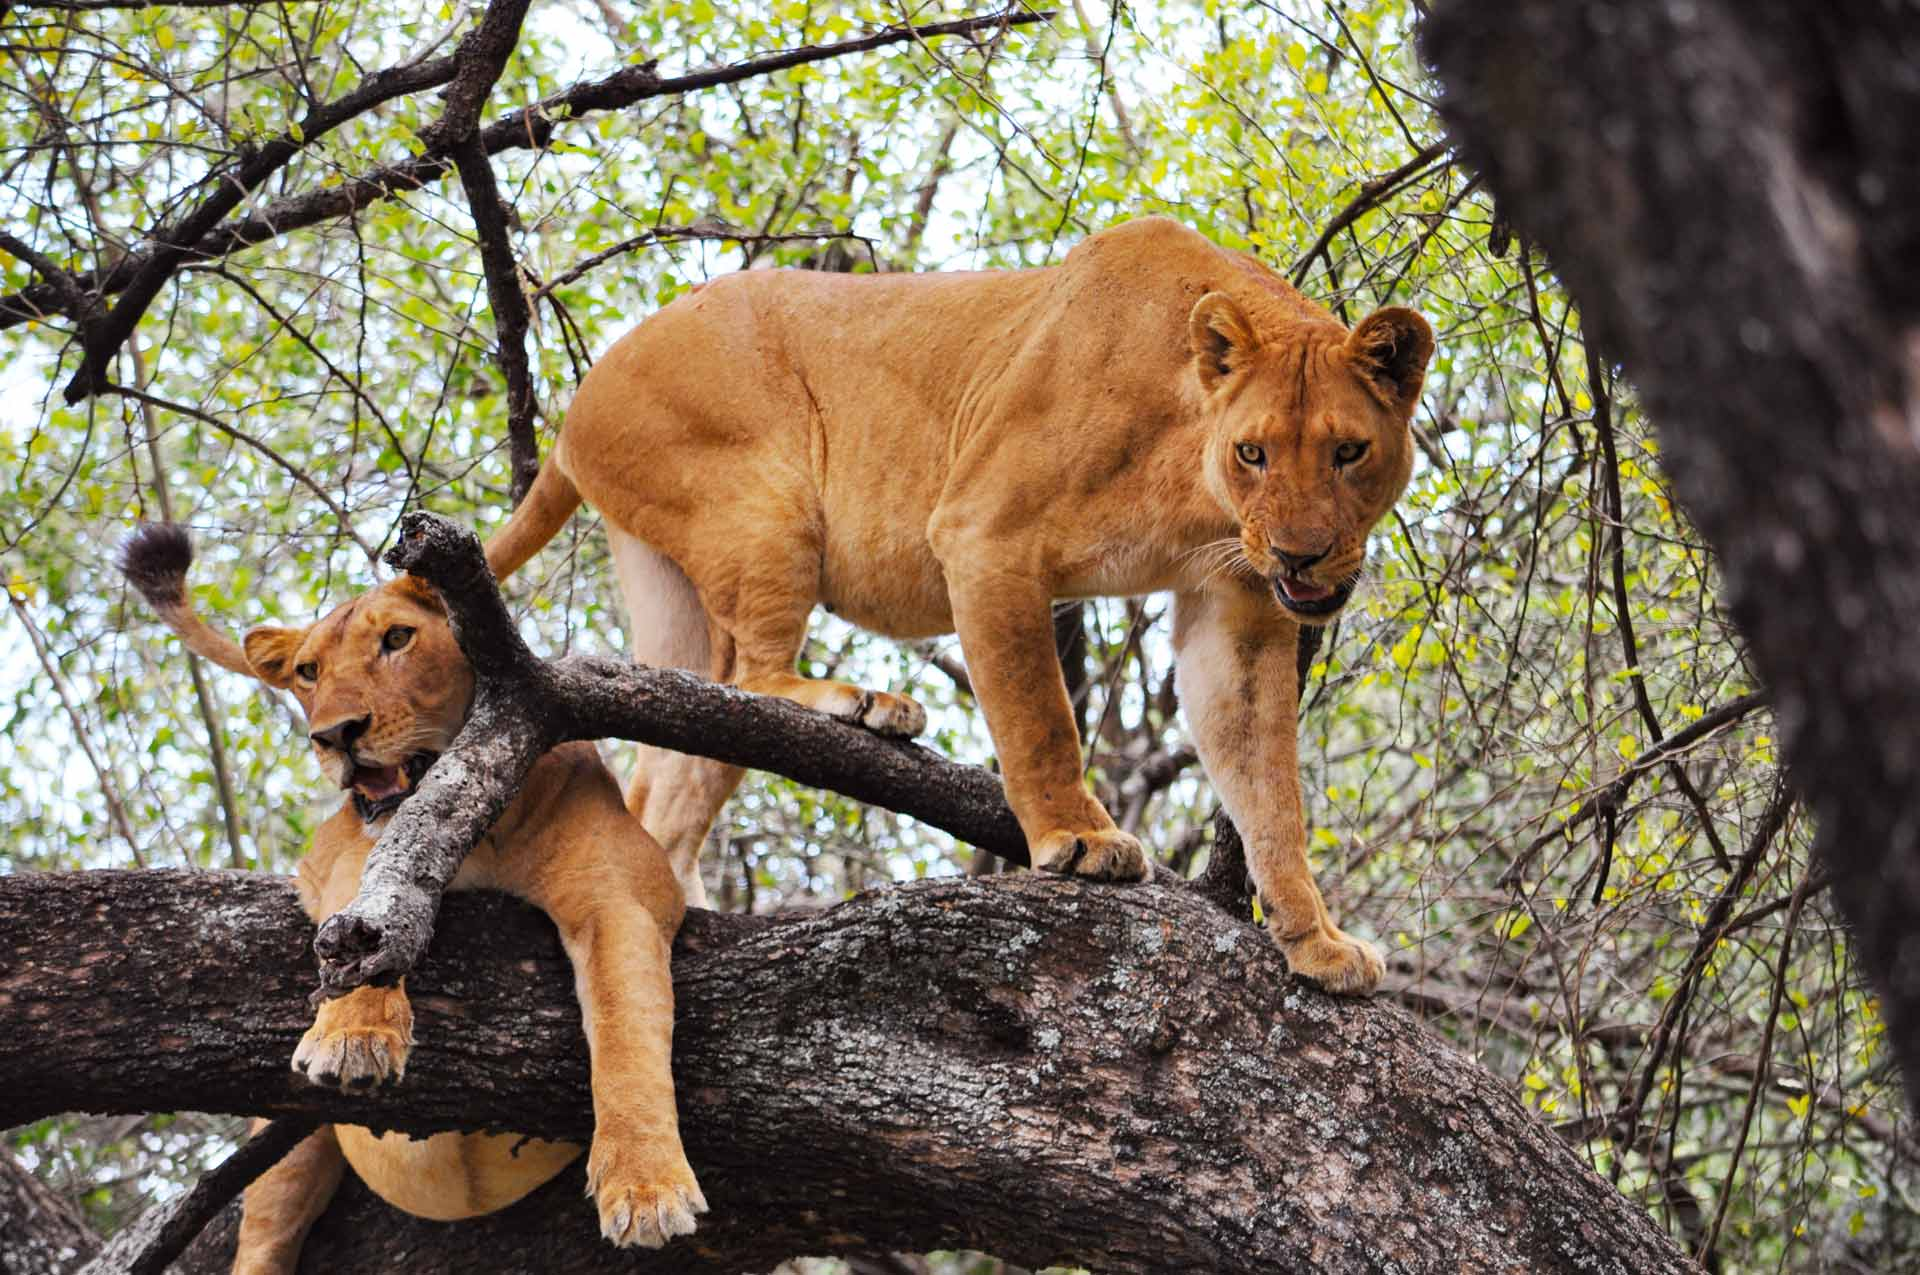 Two lionesses in a tree in Lake Manyara National Park, Tanzania.